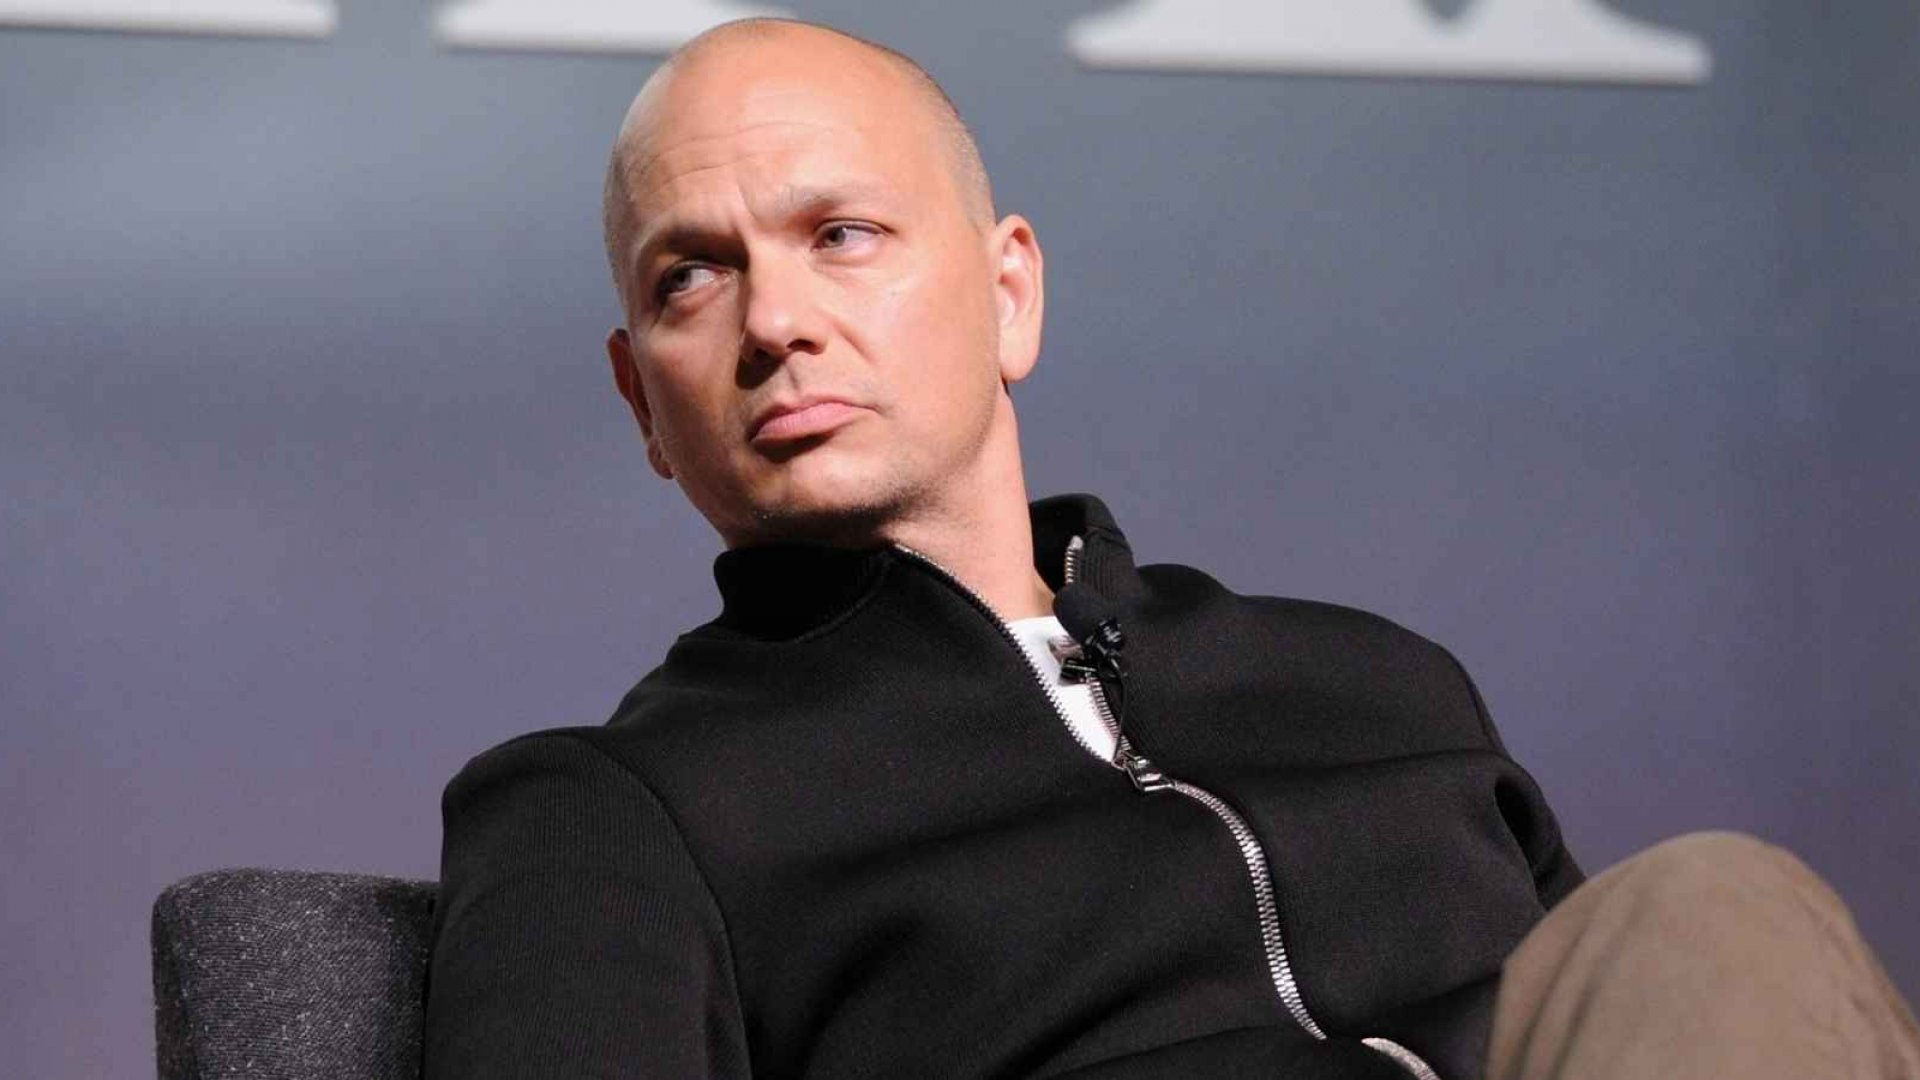 Nest CEO Tony Fadell Announces His Departure